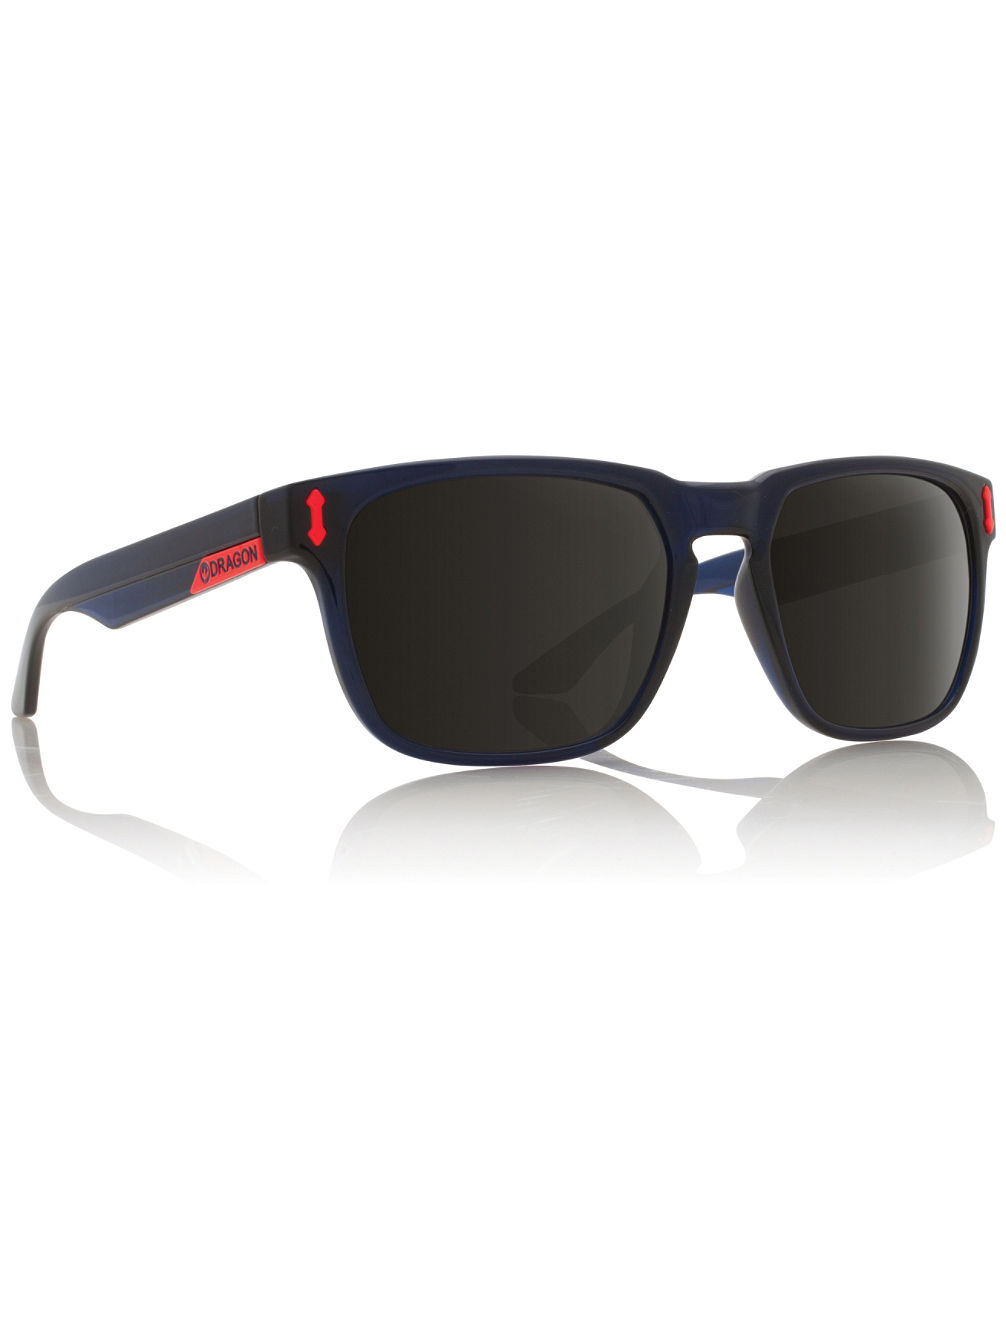 Monarch Crystal Navy Sonnenbrille